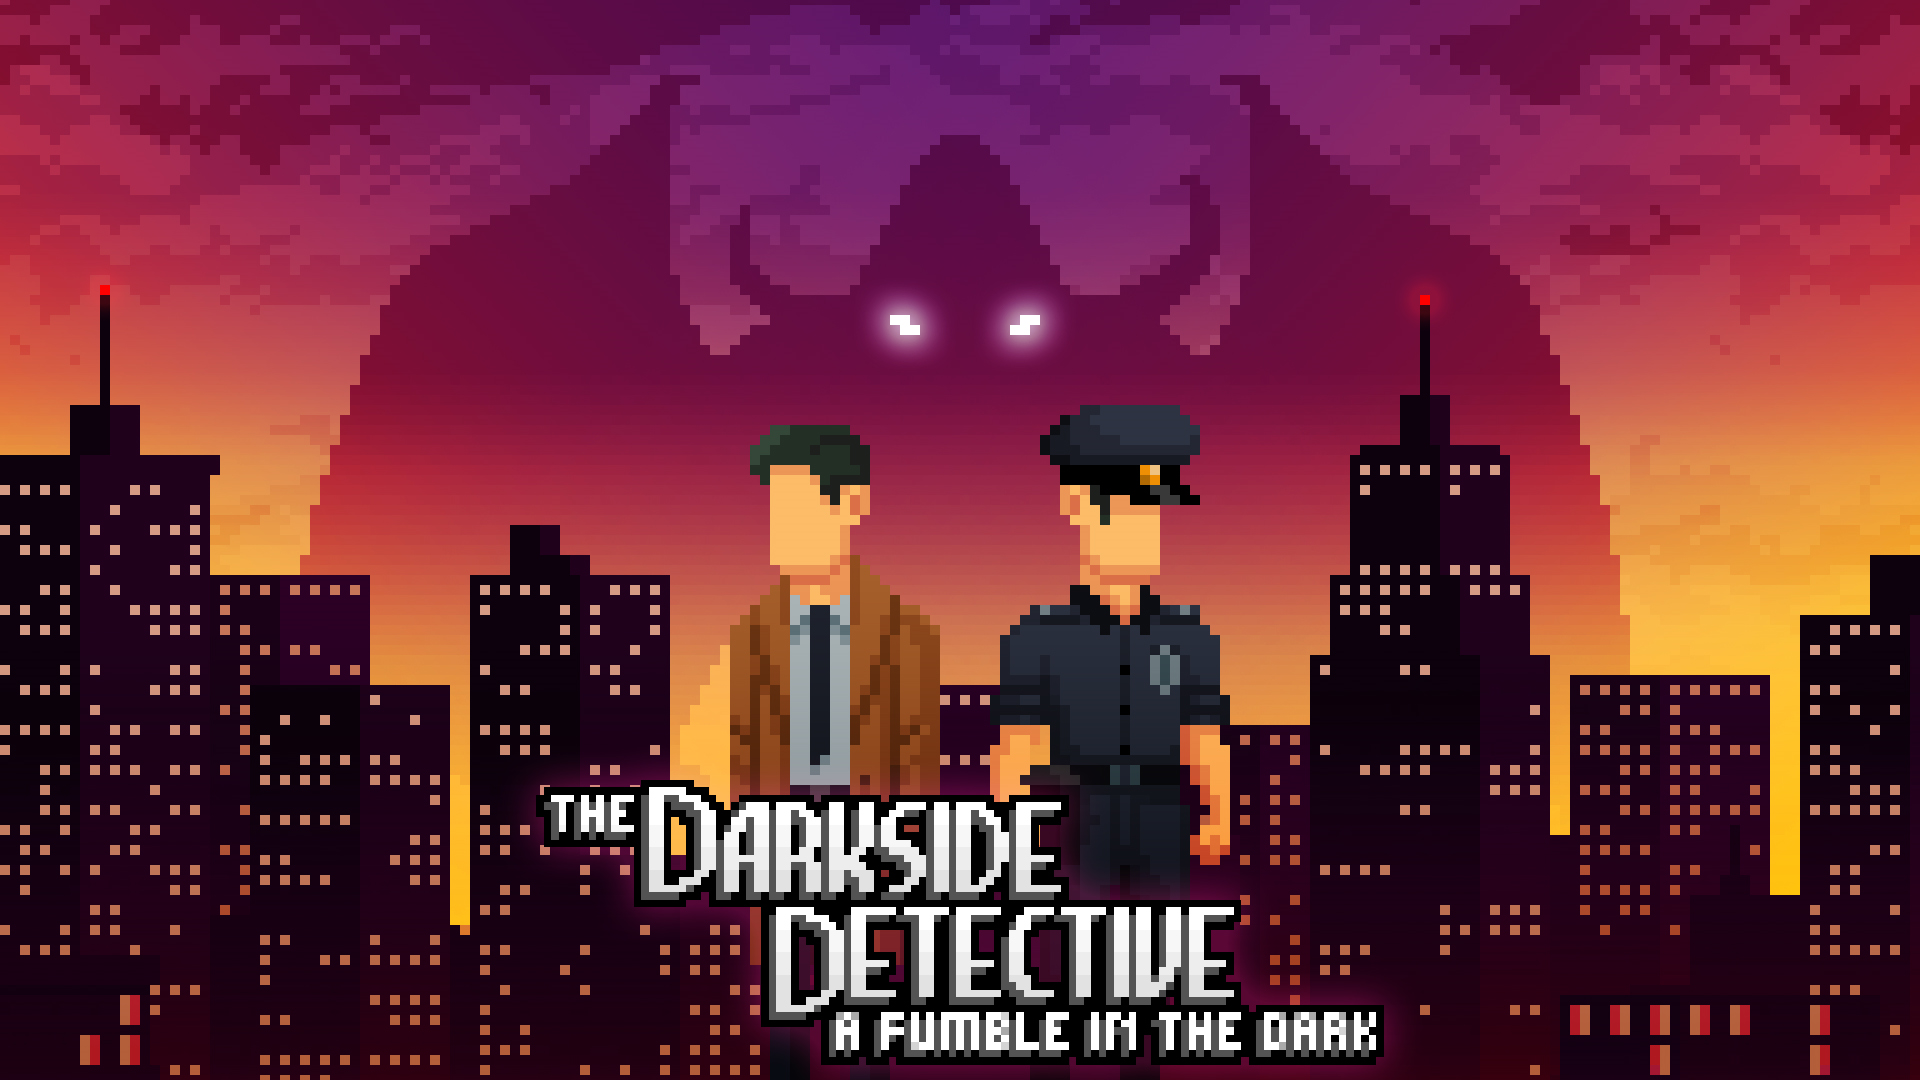 TheDarksideDetectiveS2 review featured